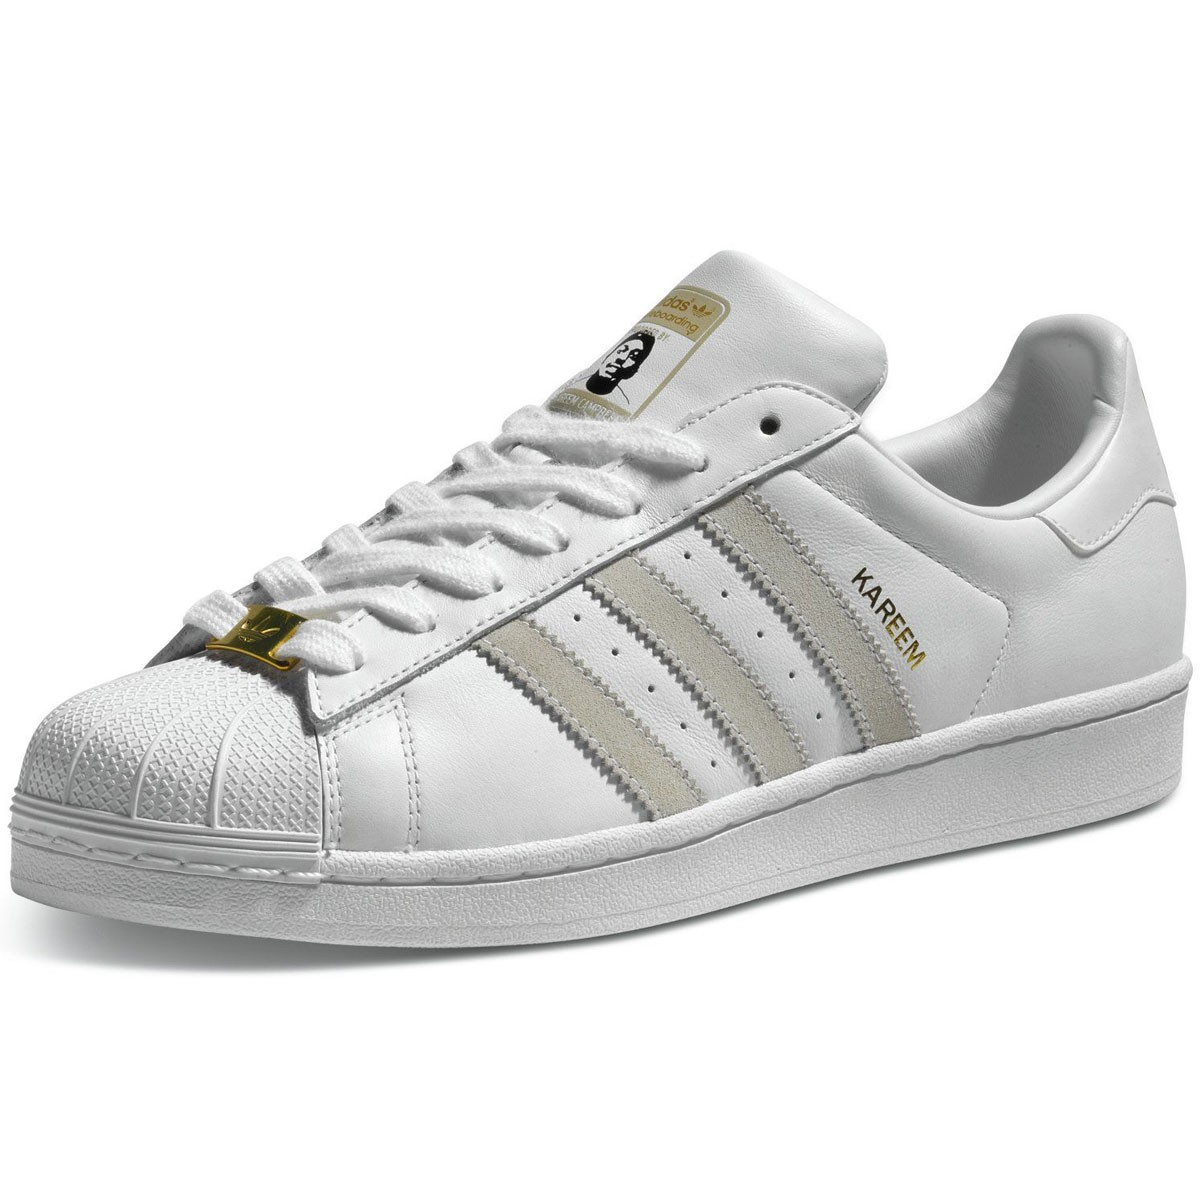 adidas superstar adicolor sole riflettenti bagliore grapevine crossfit